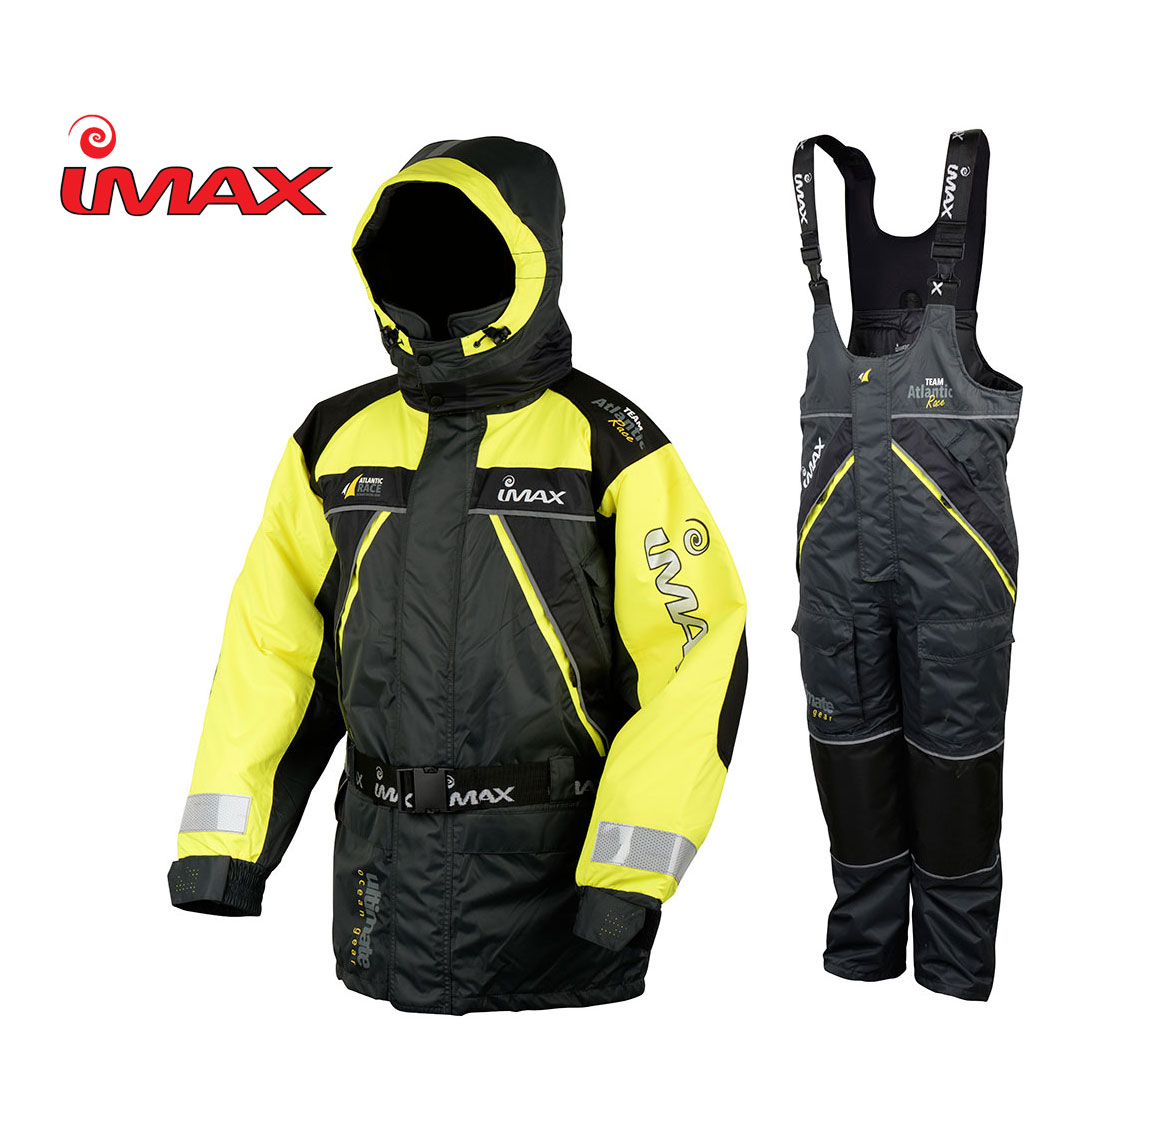 IMAX Atlantic Race thermo suit